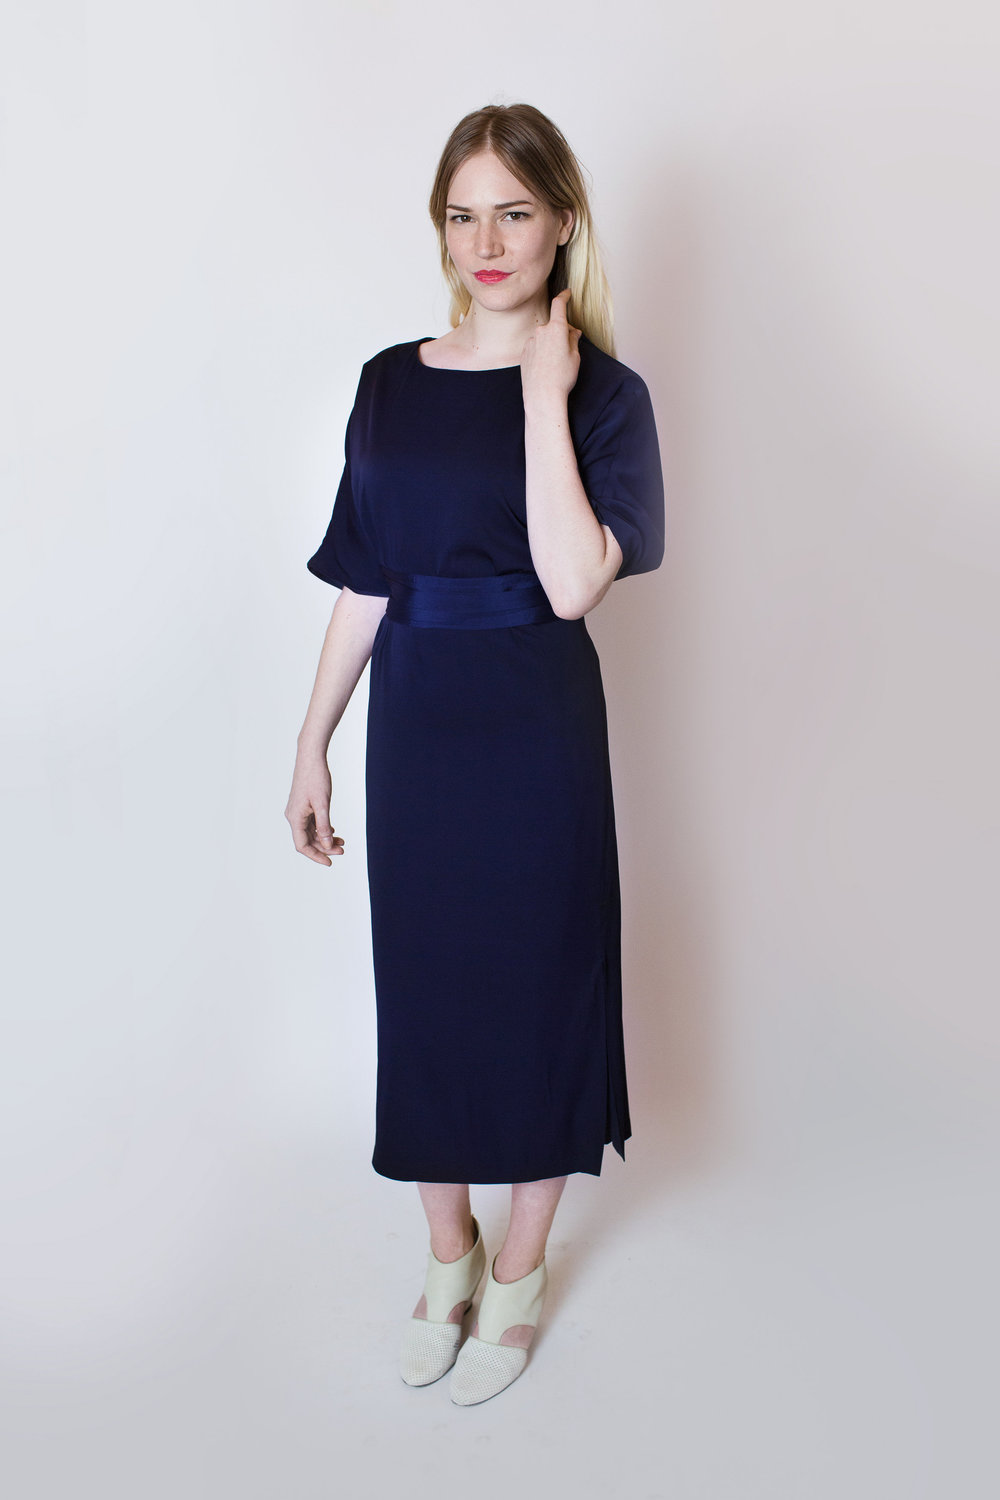 April Pride blue silk dress